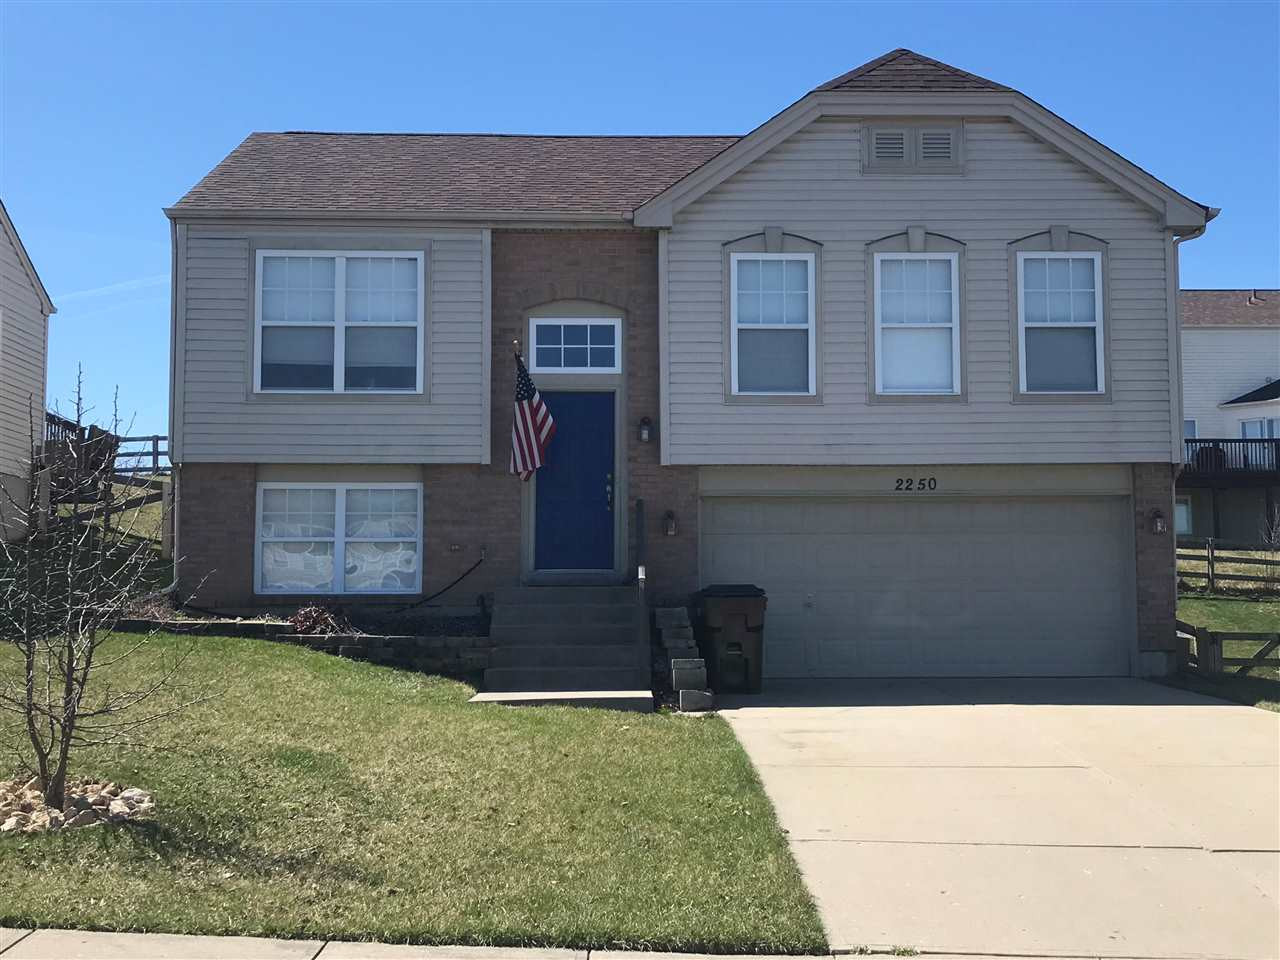 Photo 1 for 2250 Antoinette Way Union, KY 41091